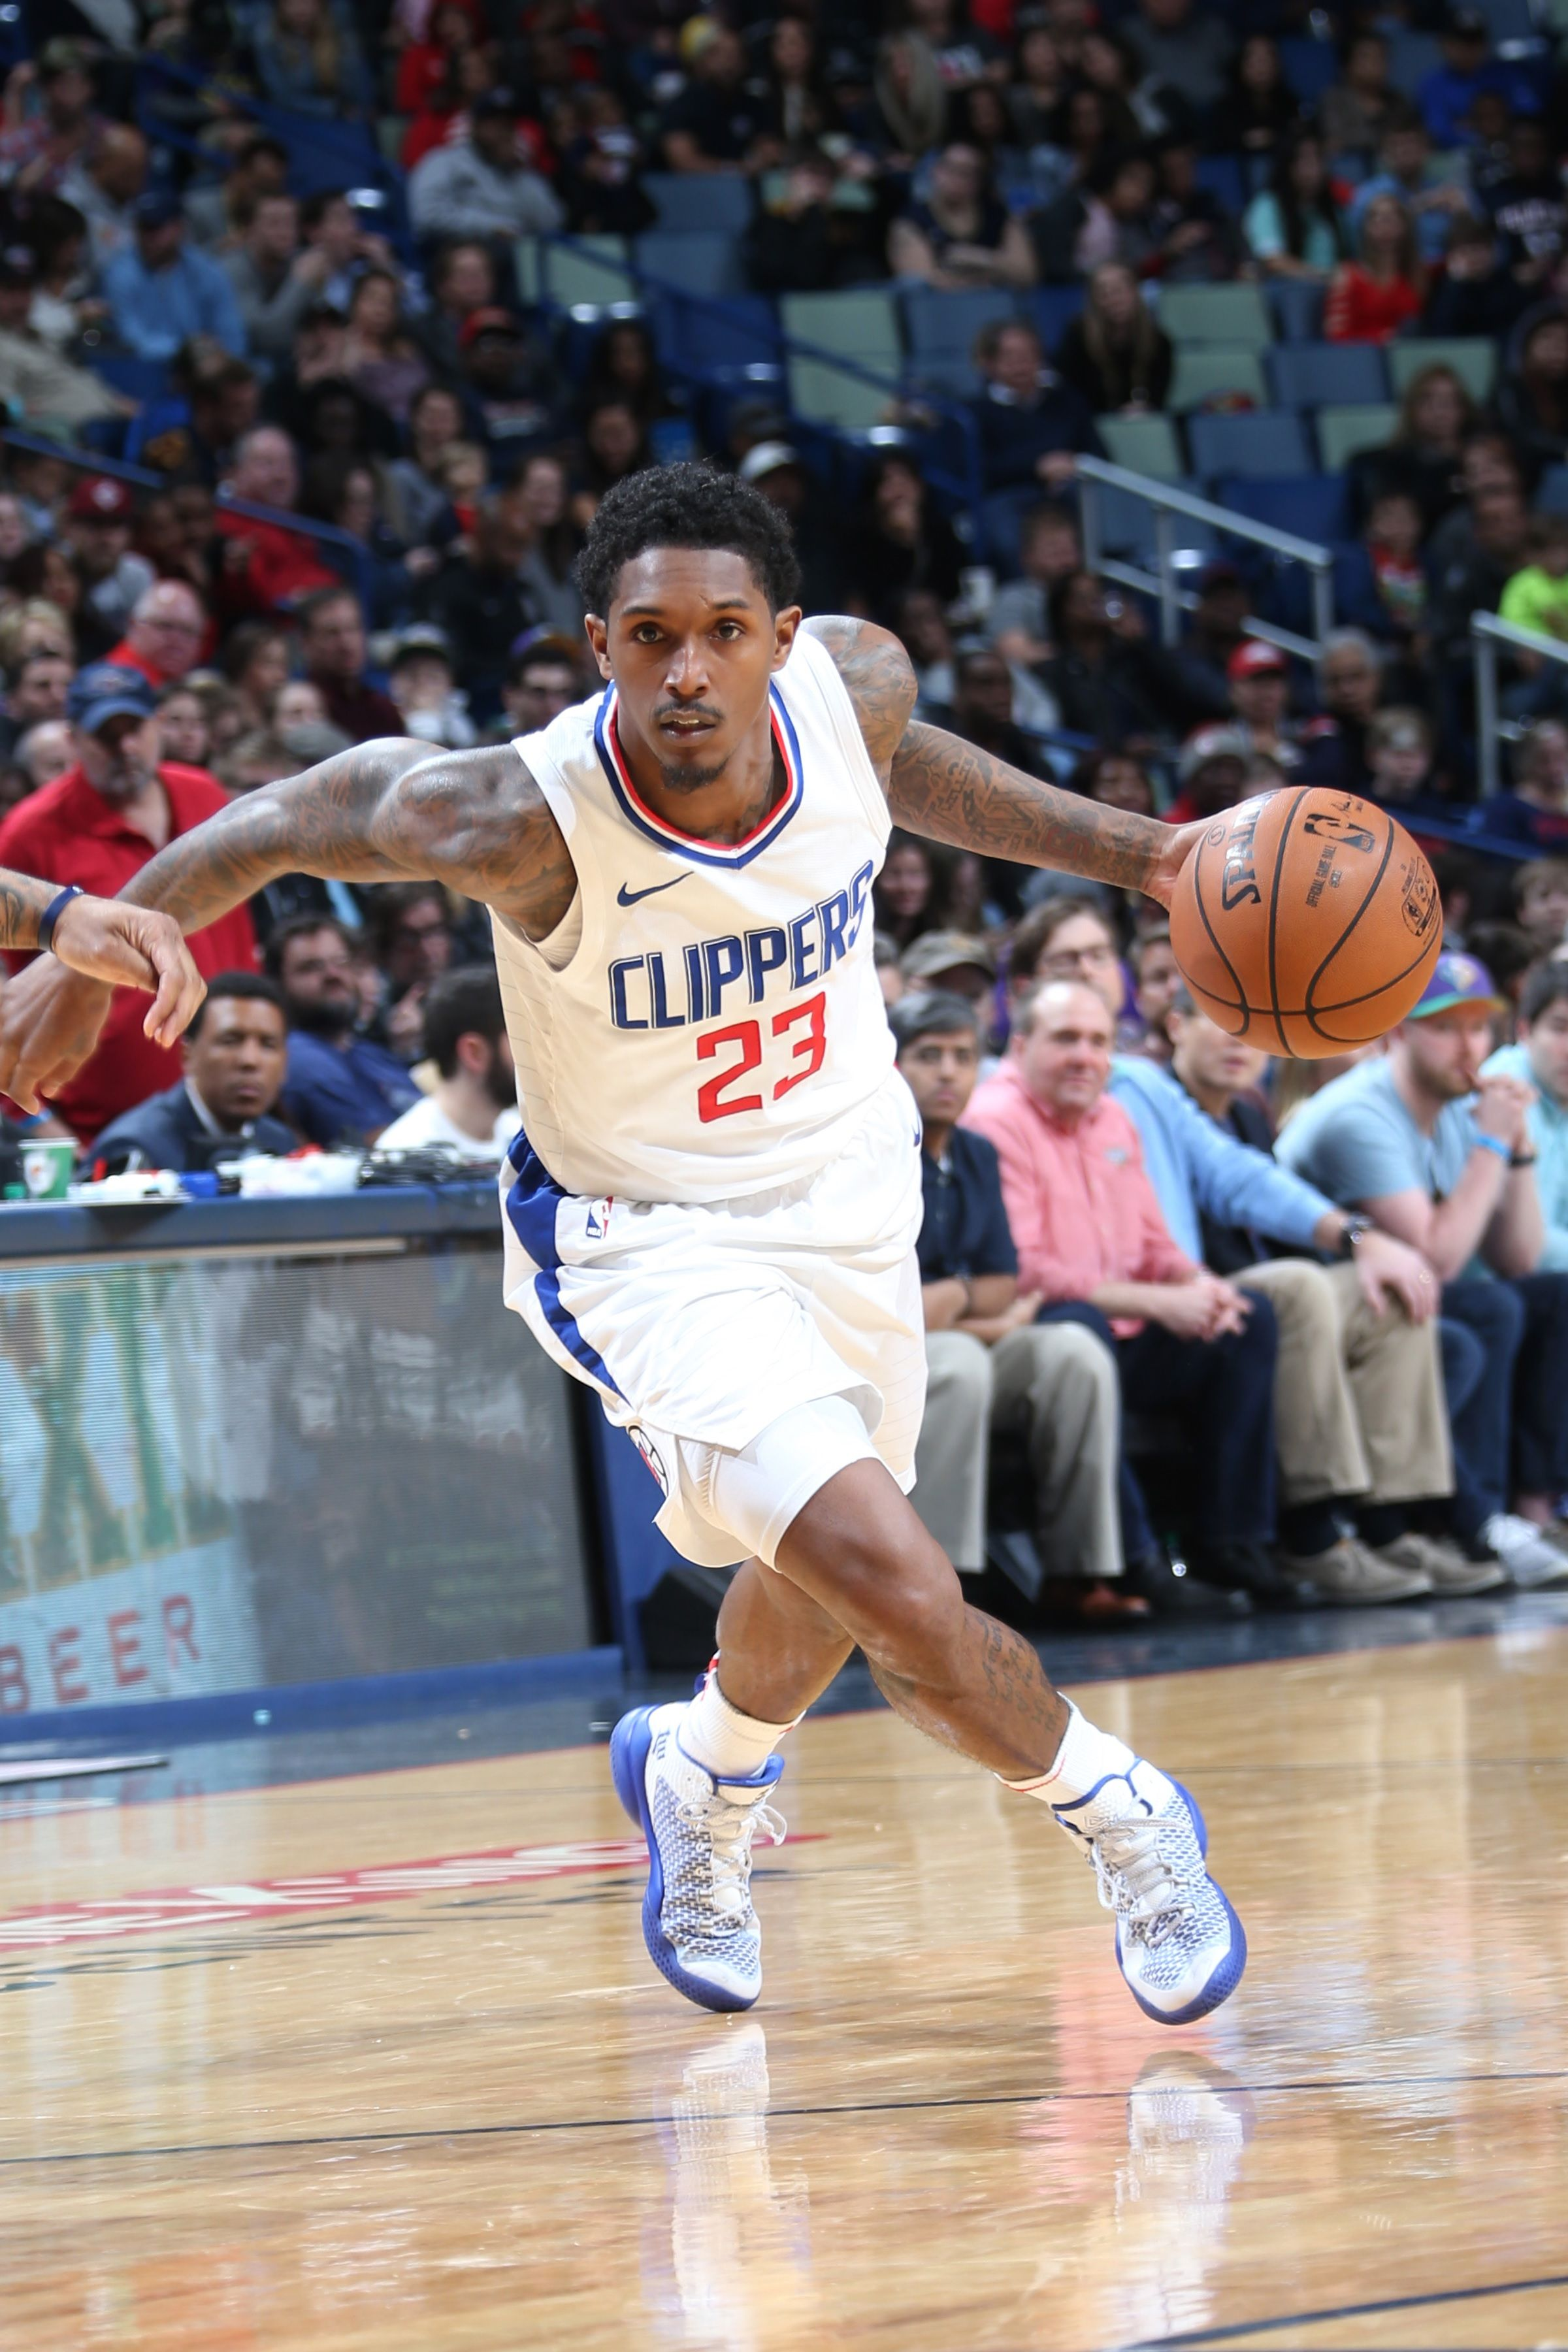 Pin By Kimberly Johnson On Clippers Girl Lou Williams Nba Players Los Angeles Clippers